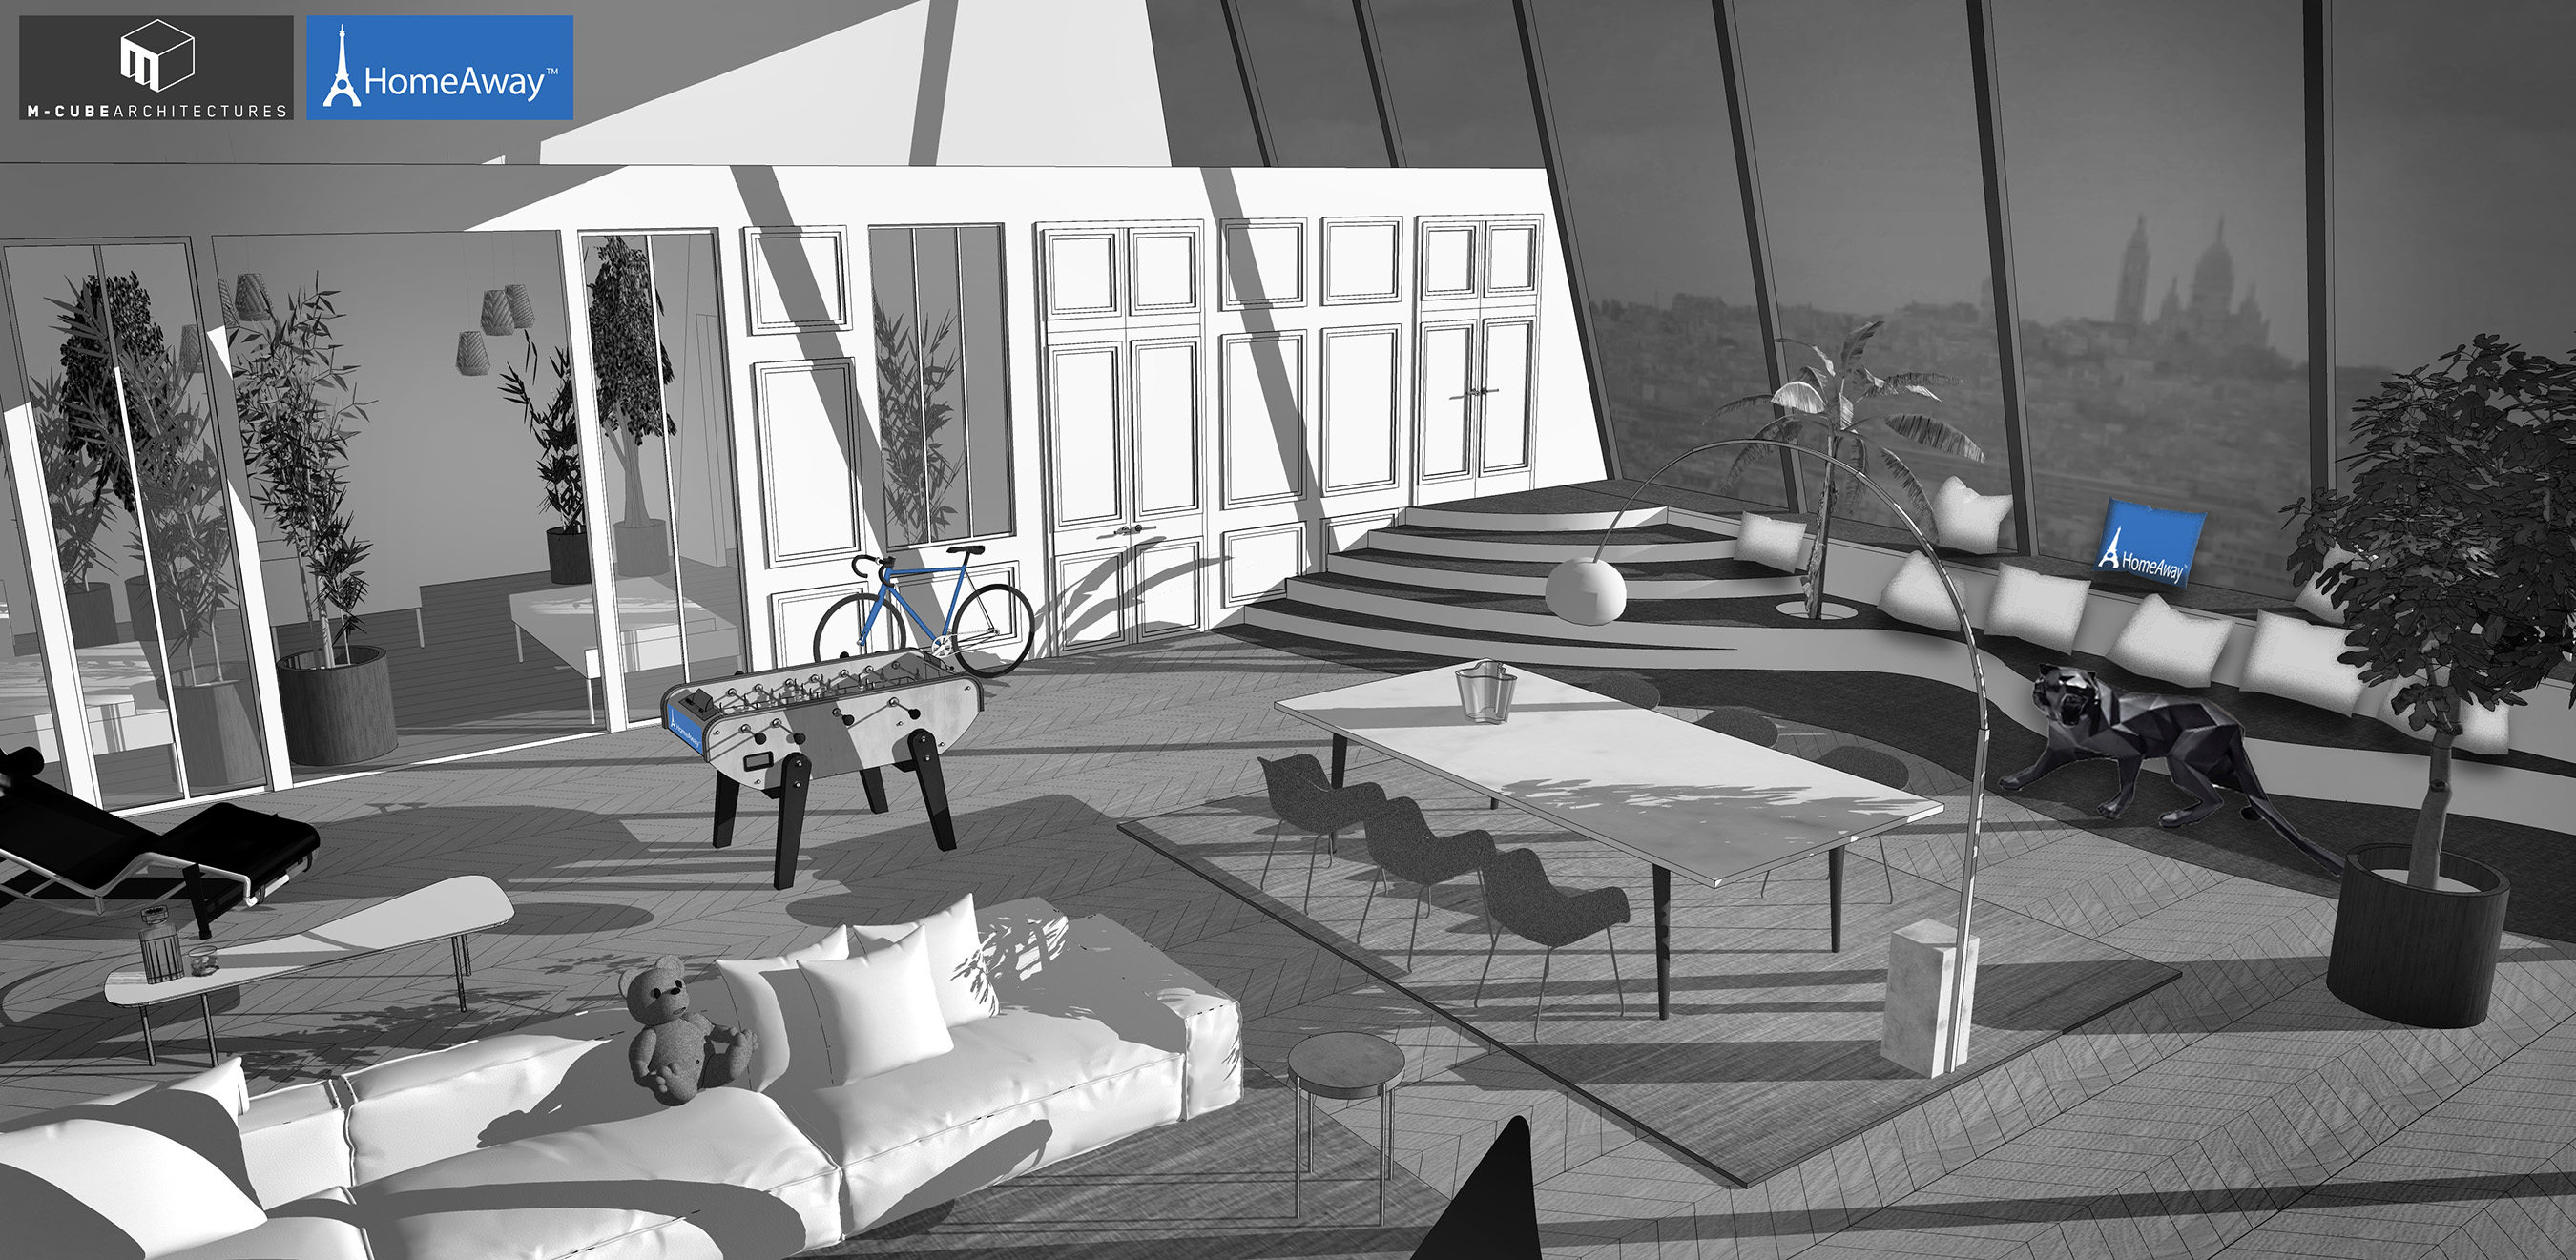 An early design drawing of HomeAway's Eiffel Tower apartment. Courtesy of HomeAway.